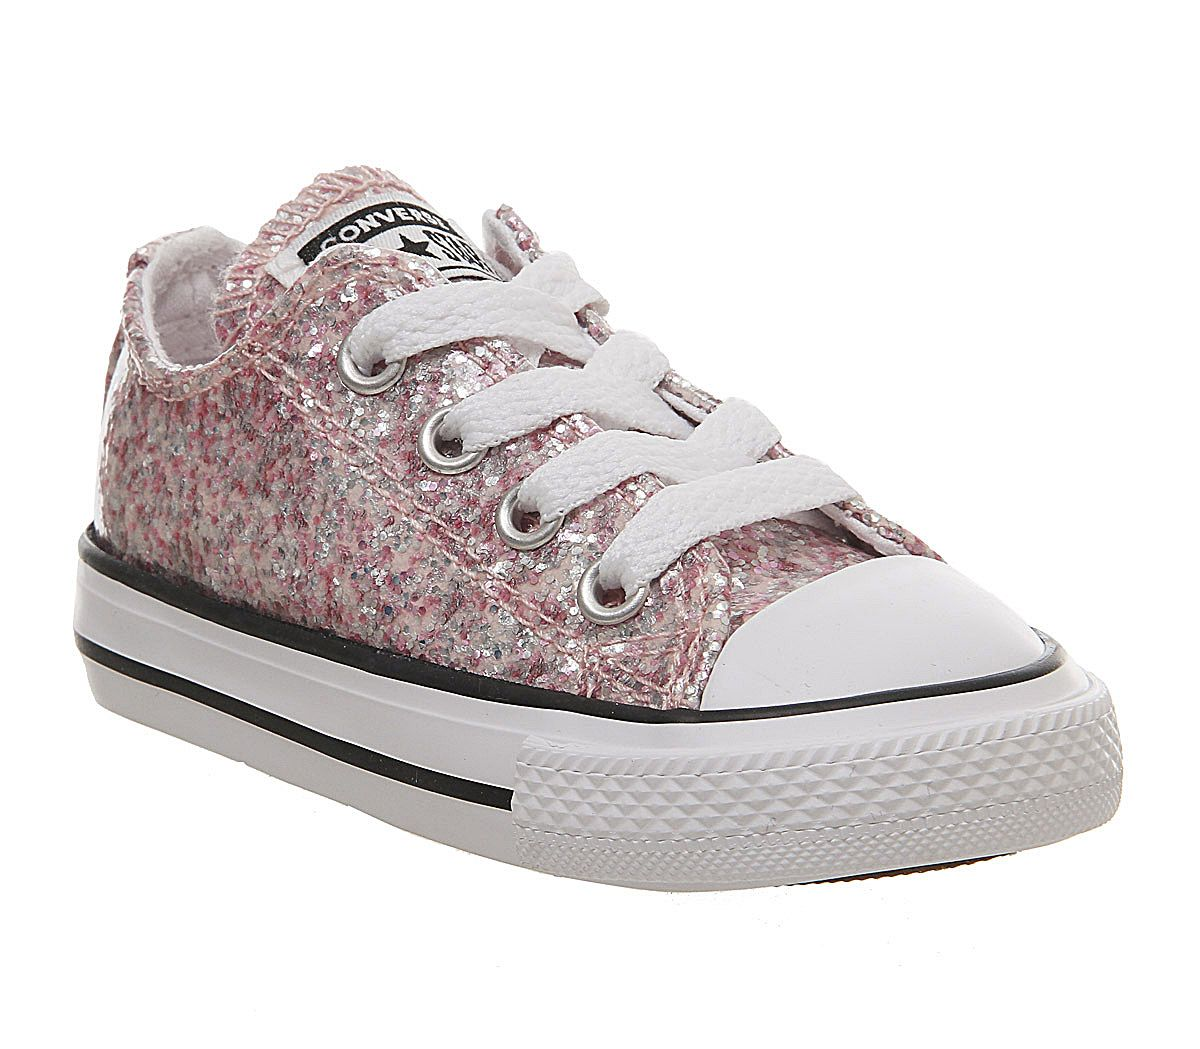 7bfc42ed20e8 Converse Allstar Low Infant Trainers Light Pink Glitter Exclusive ...